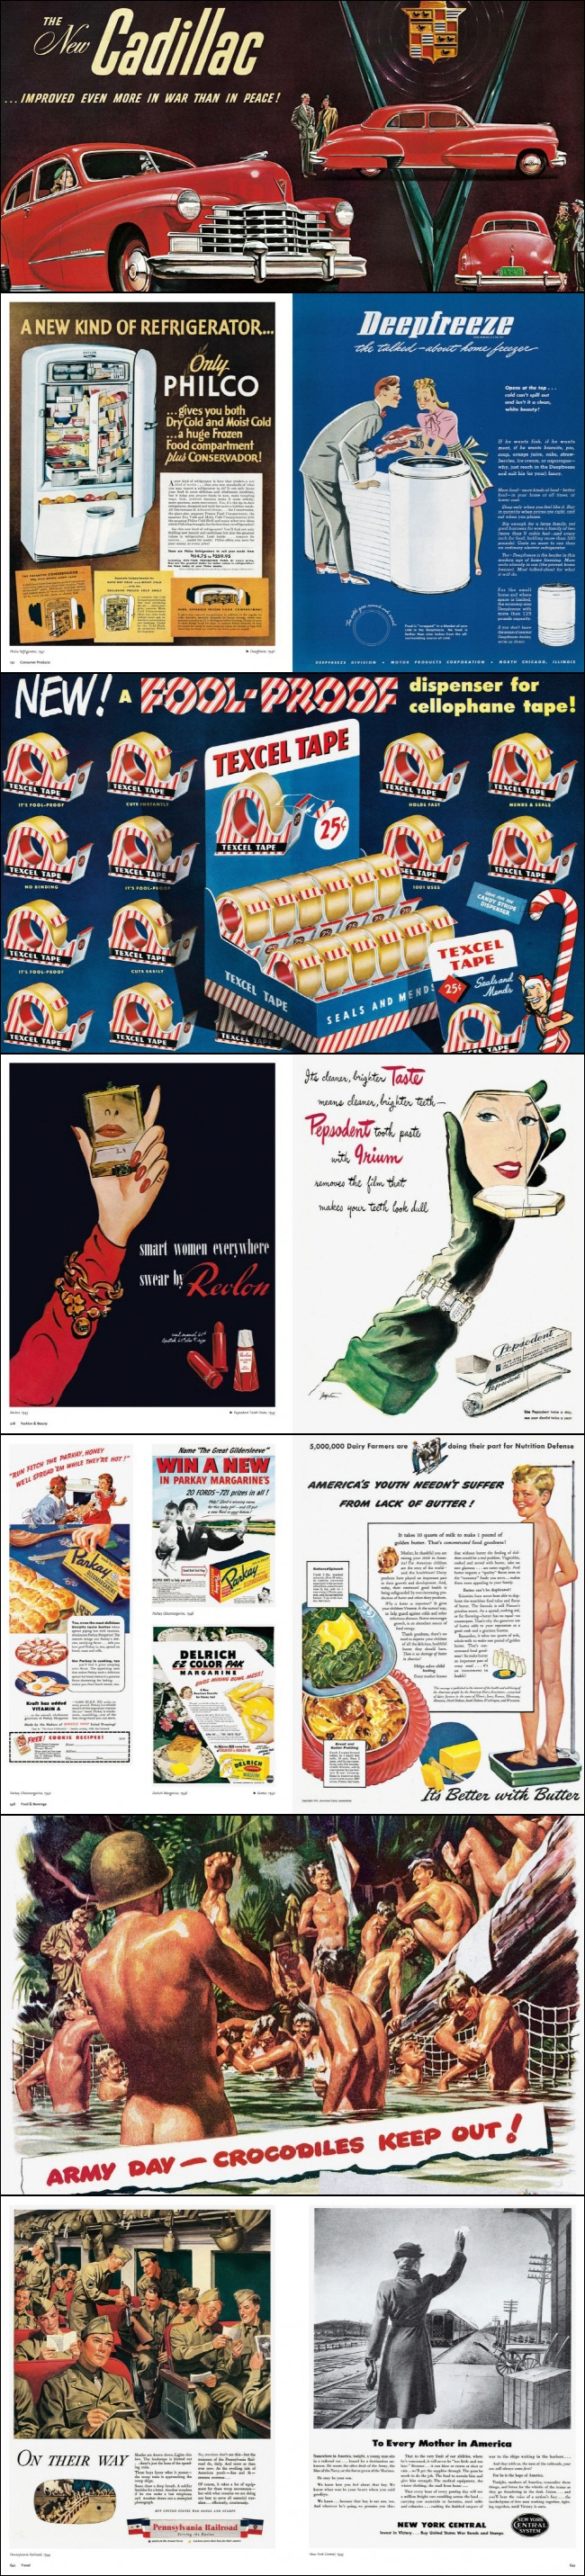 All-American Ads of the 40s 도서 상세이미지